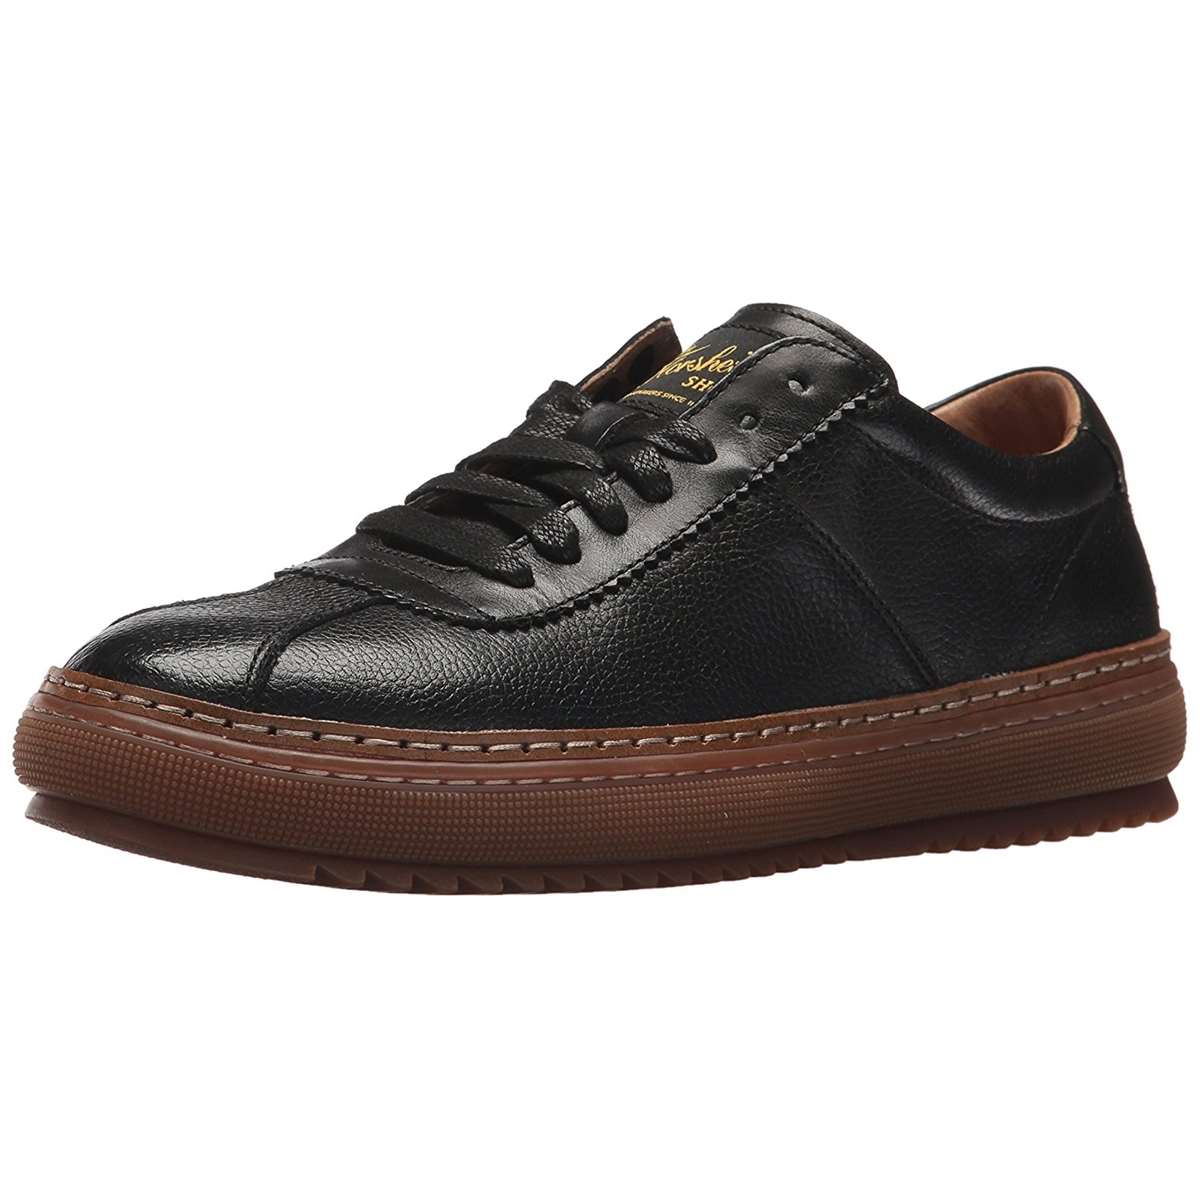 Florsheim M Crew Low Sneakers by Florsheim